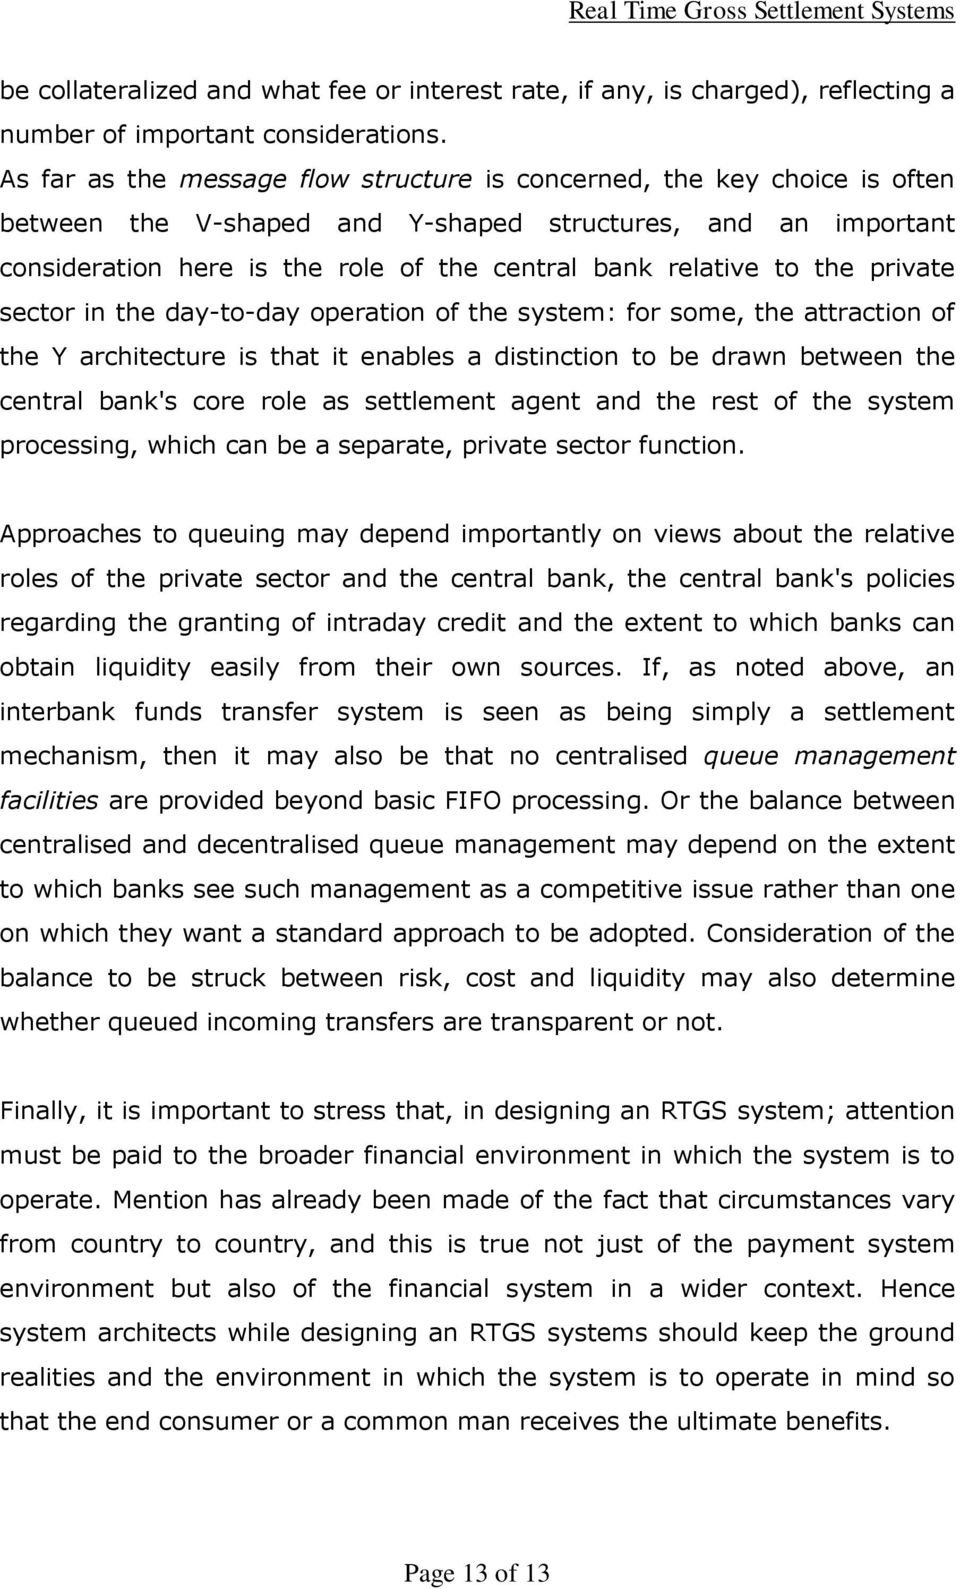 to the private sector in the day-to-day operation of the system: for some, the attraction of the Y architecture is that it enables a distinction to be drawn between the central bank's core role as